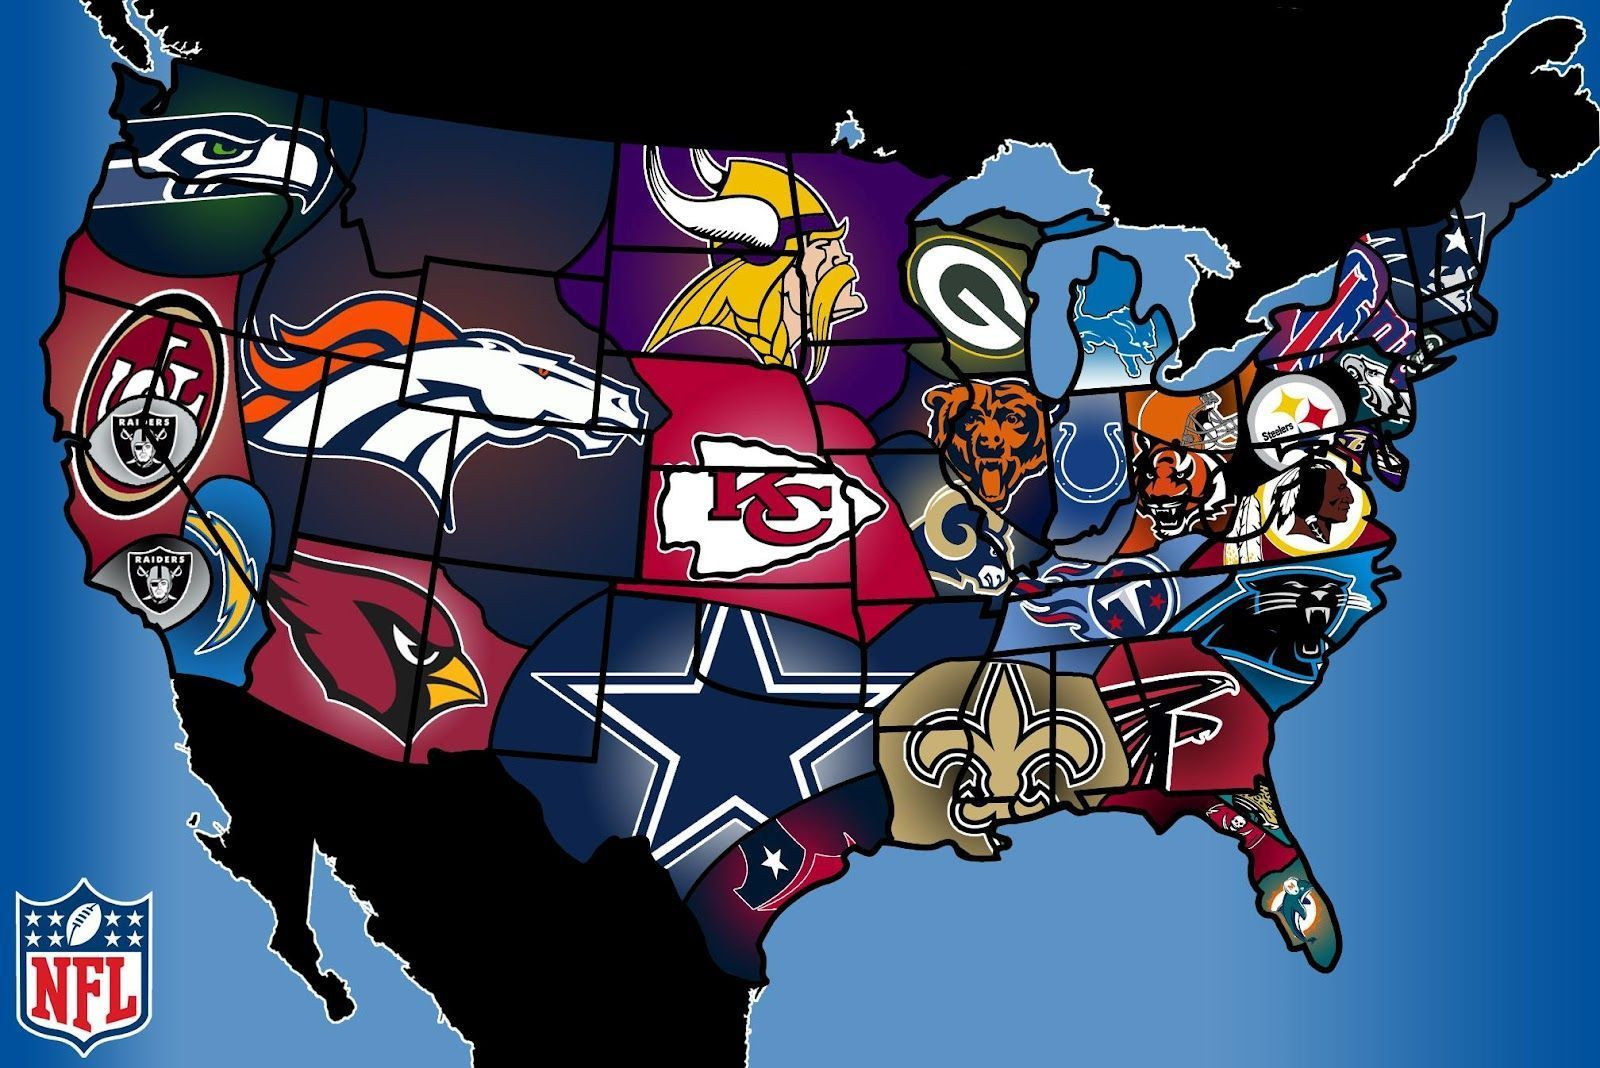 nfl teams wallpaper  Nfl Teams Wallpapers Wallpaper | wallpapers | Pinterest | Football ...